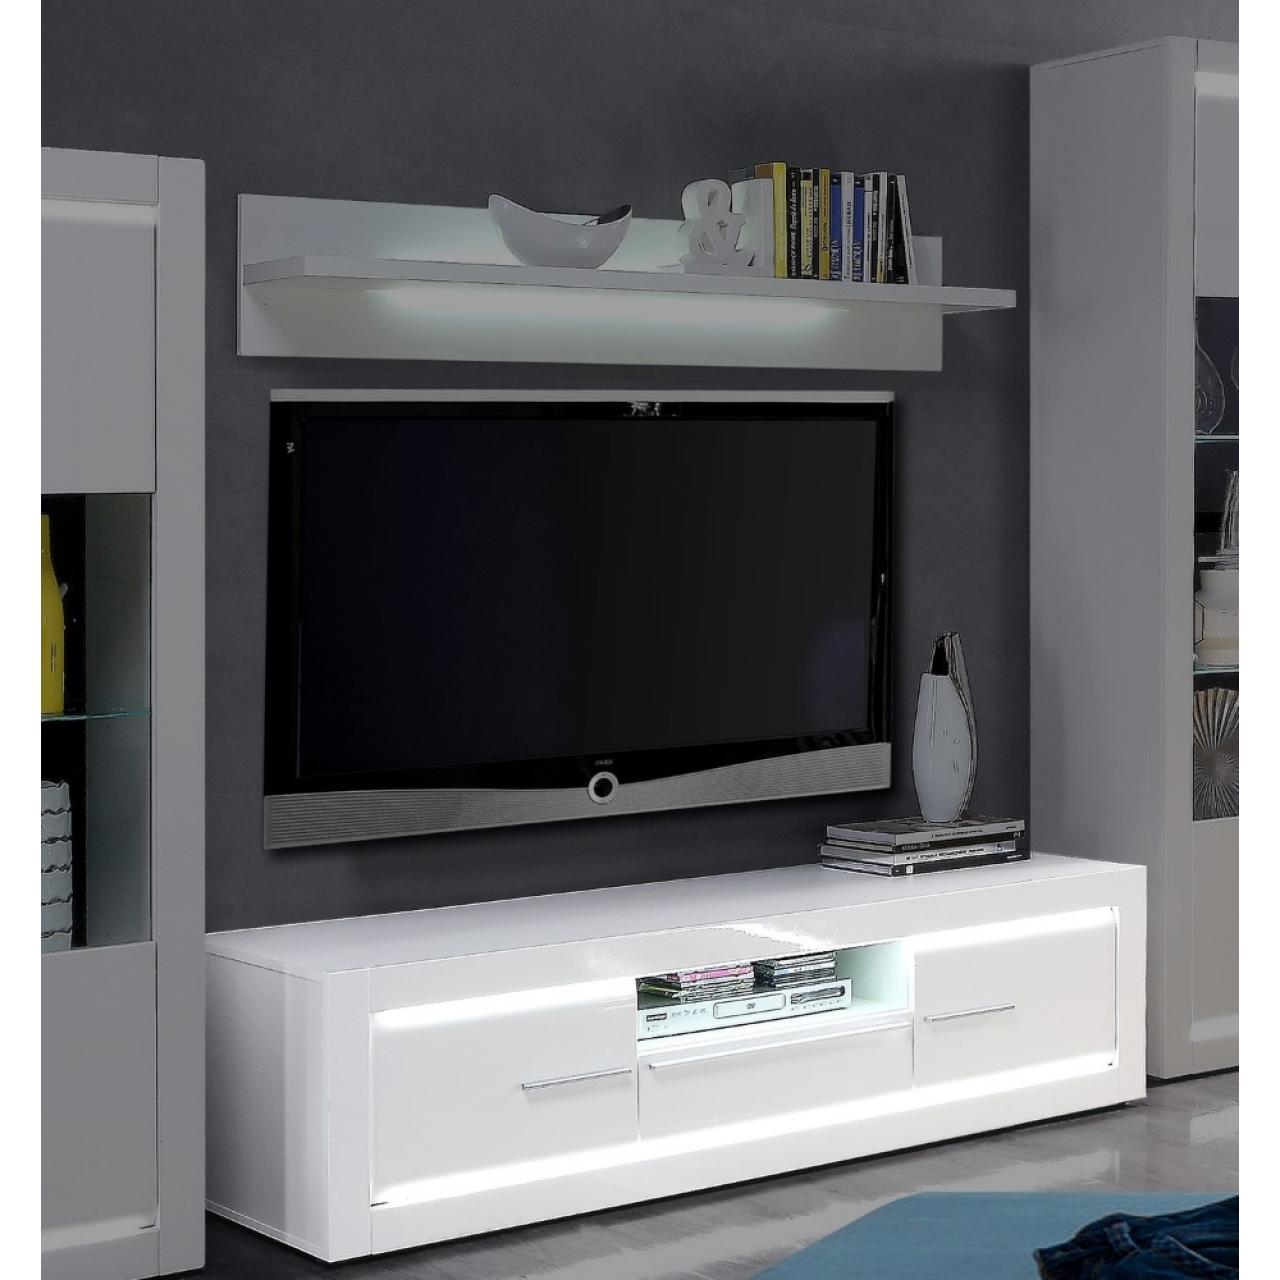 tv unterschrank l light wei lowboard led beleuchtung m bel j hnichen center gmbh. Black Bedroom Furniture Sets. Home Design Ideas